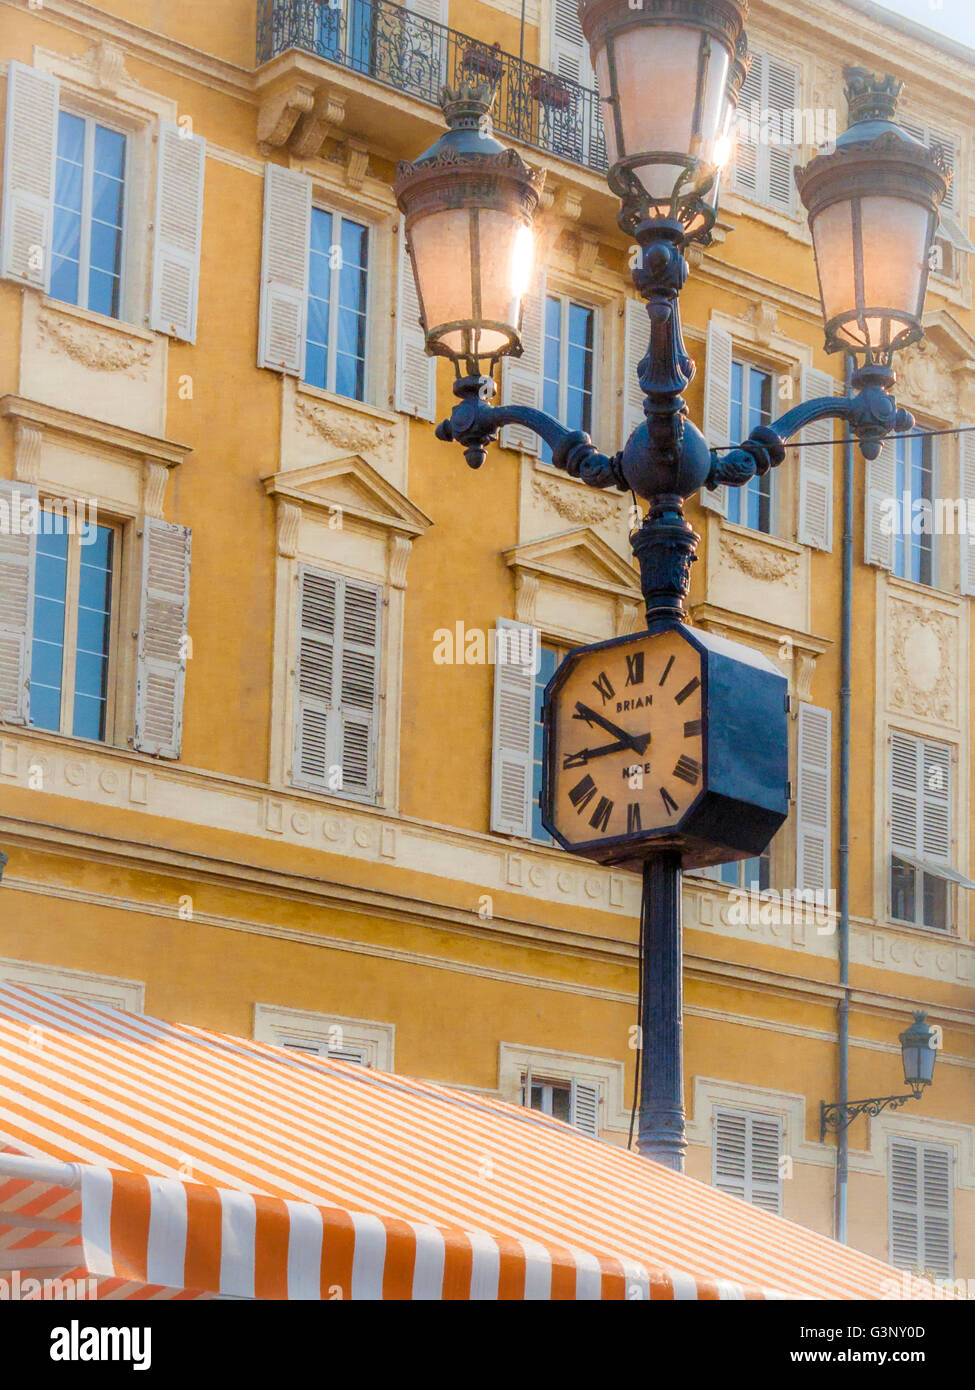 (Soft focus effect) Clock on lamp post Nice market, Cote d'Azur, Nice, France, Europe - Stock Image